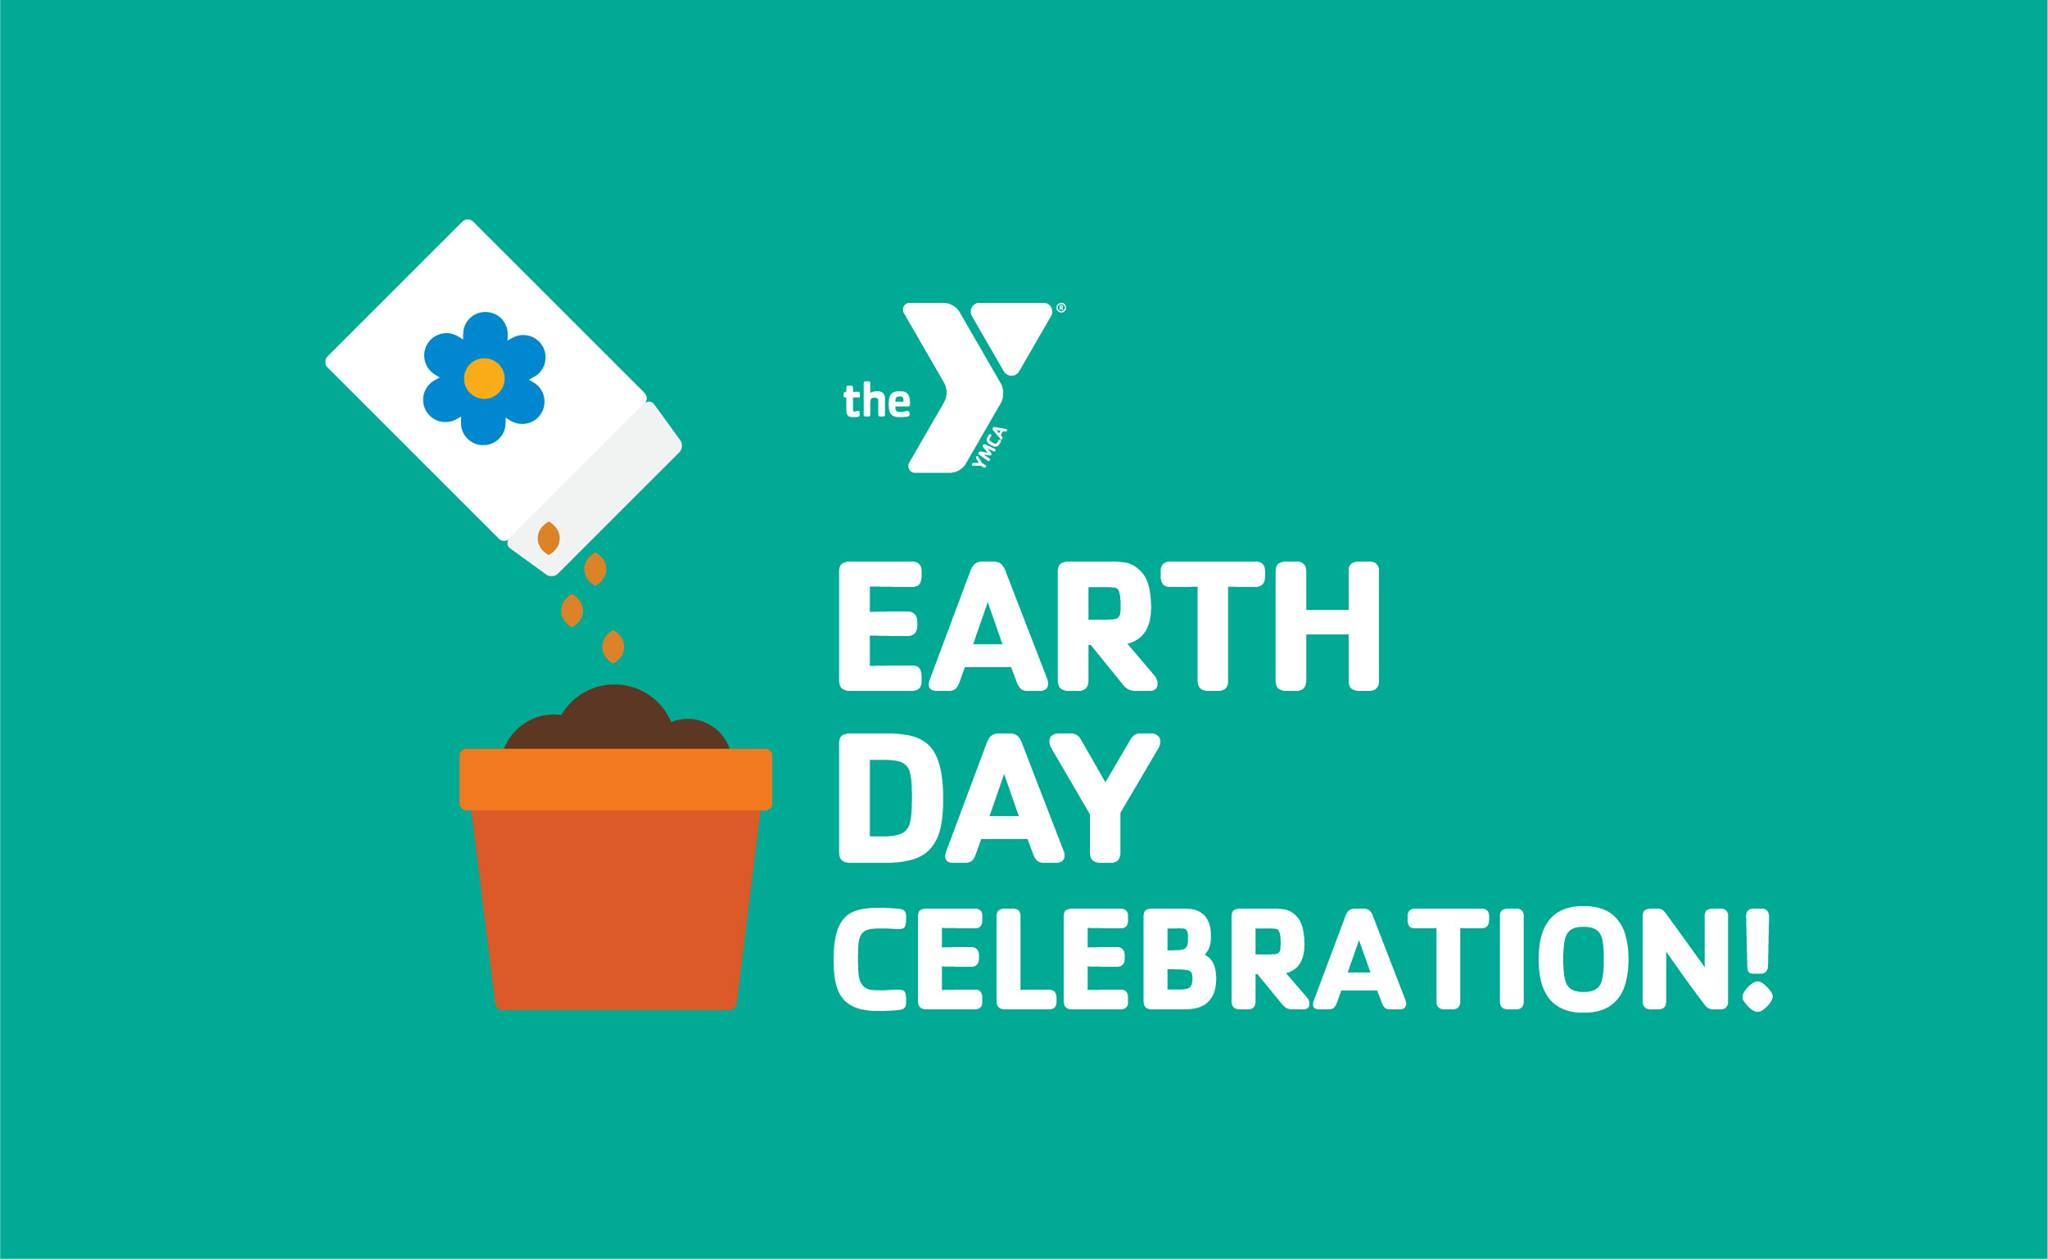 Earth Day Celebration @ the YMCA